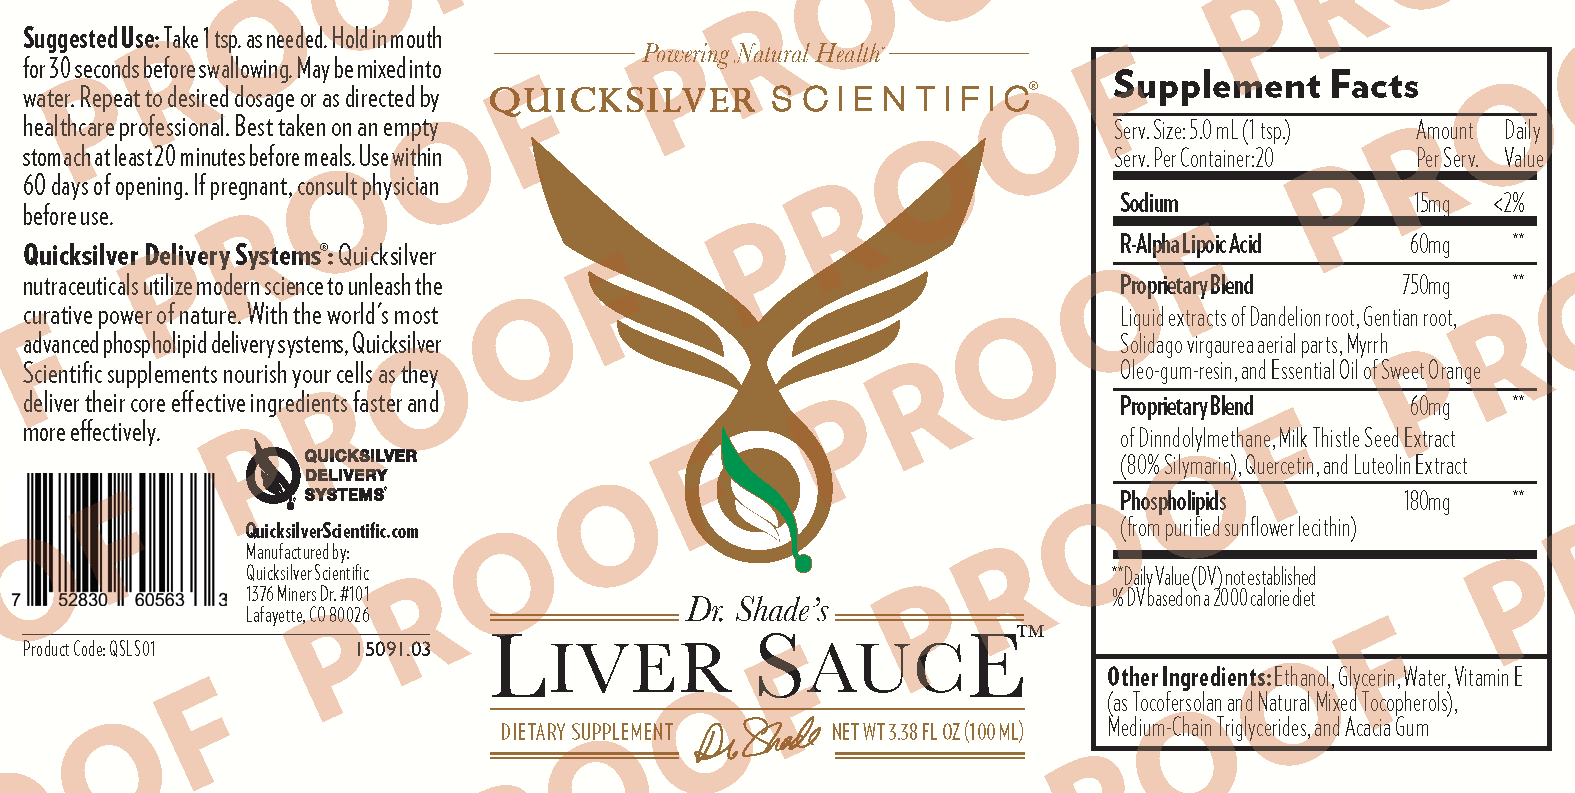 Liver Sauce 100ml Herbal Line 1509103 Women's 55+ Multivitamin